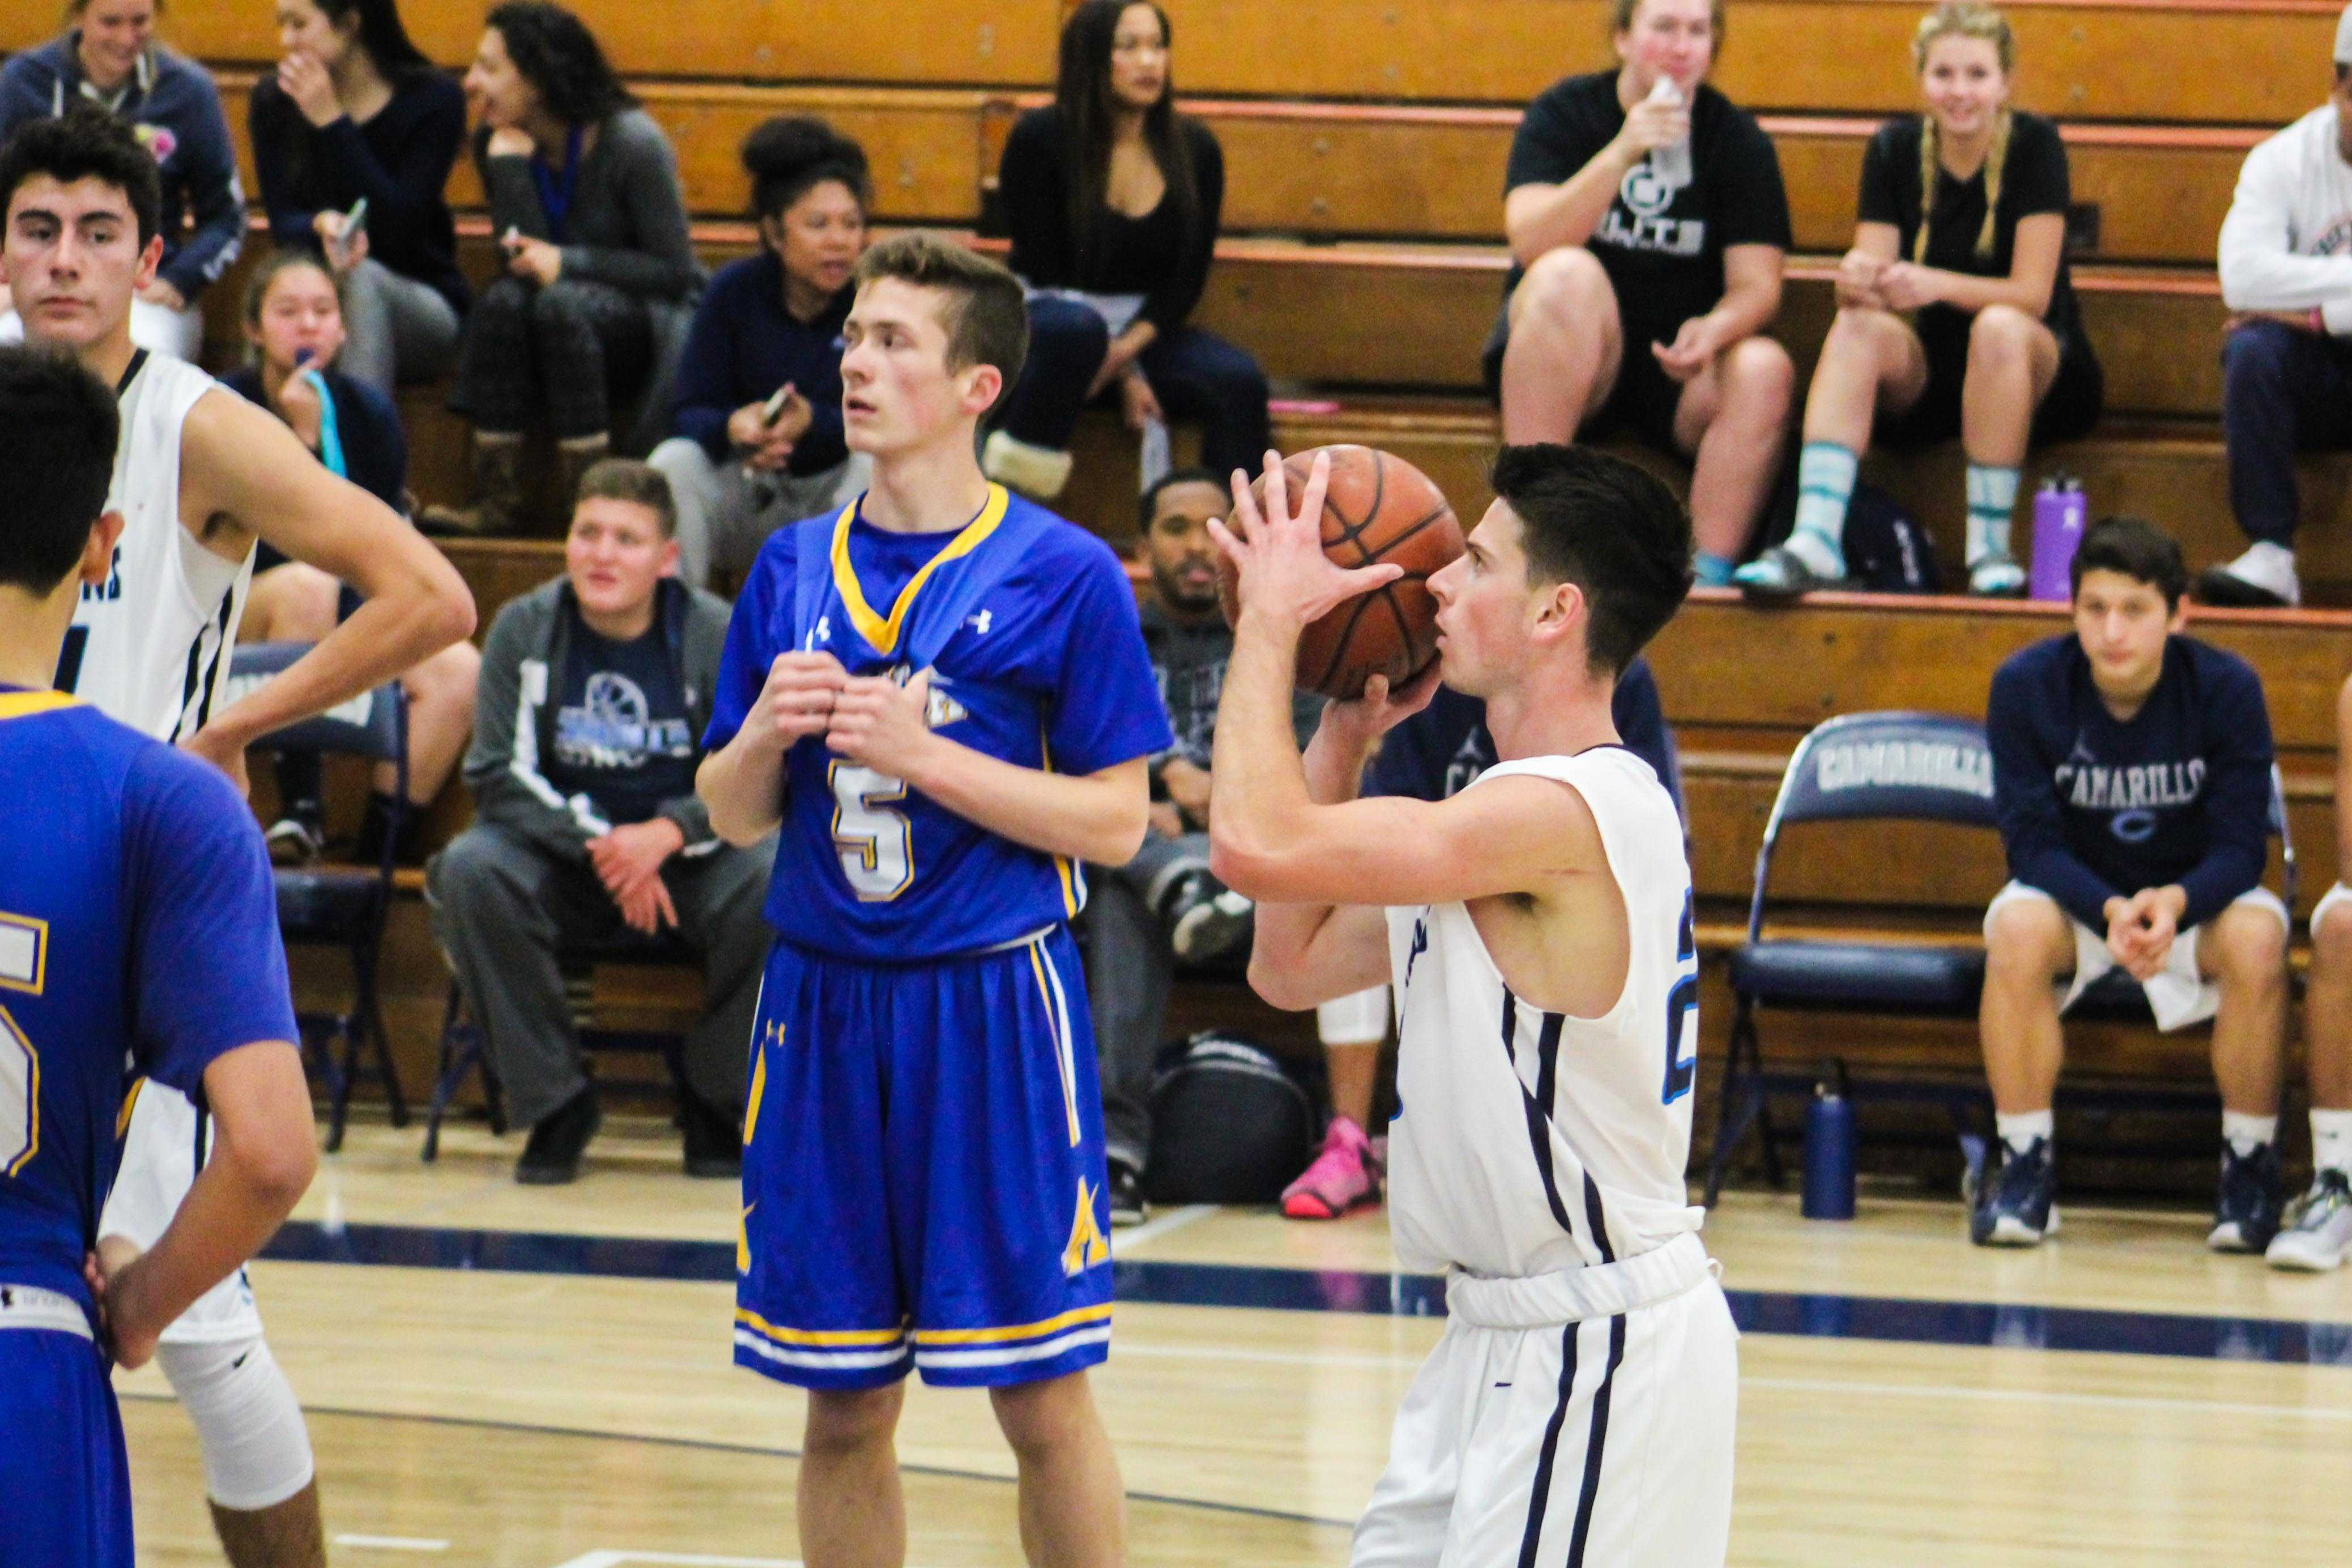 Brandon Adair, senior, shoots a free throw.